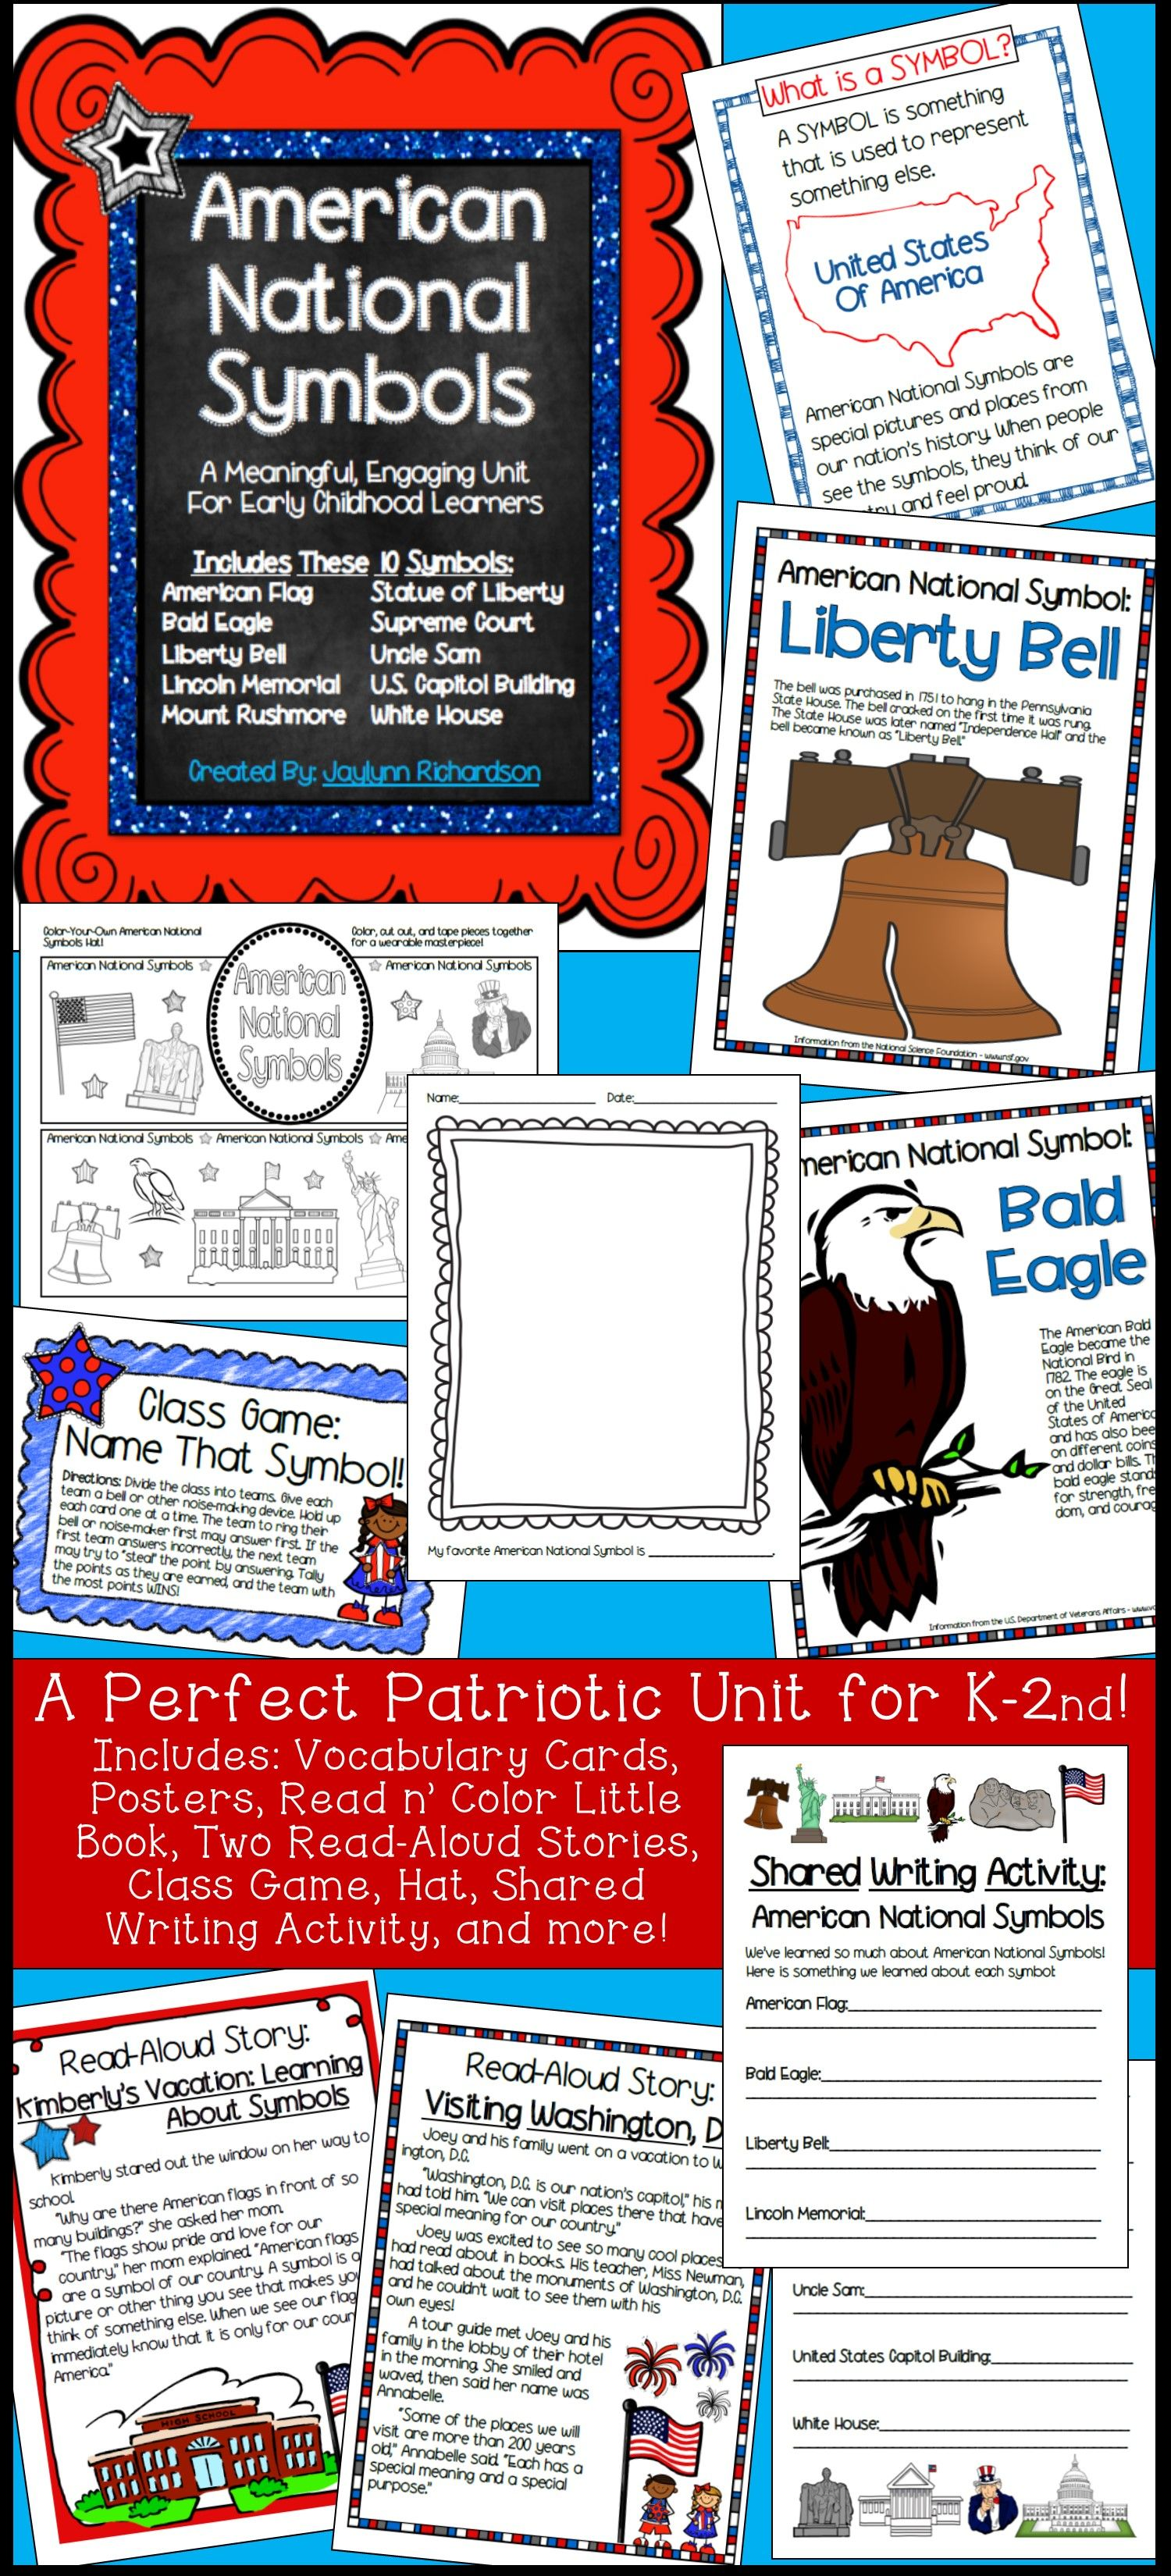 American National Symbols A Meaningful Engaging Unit For